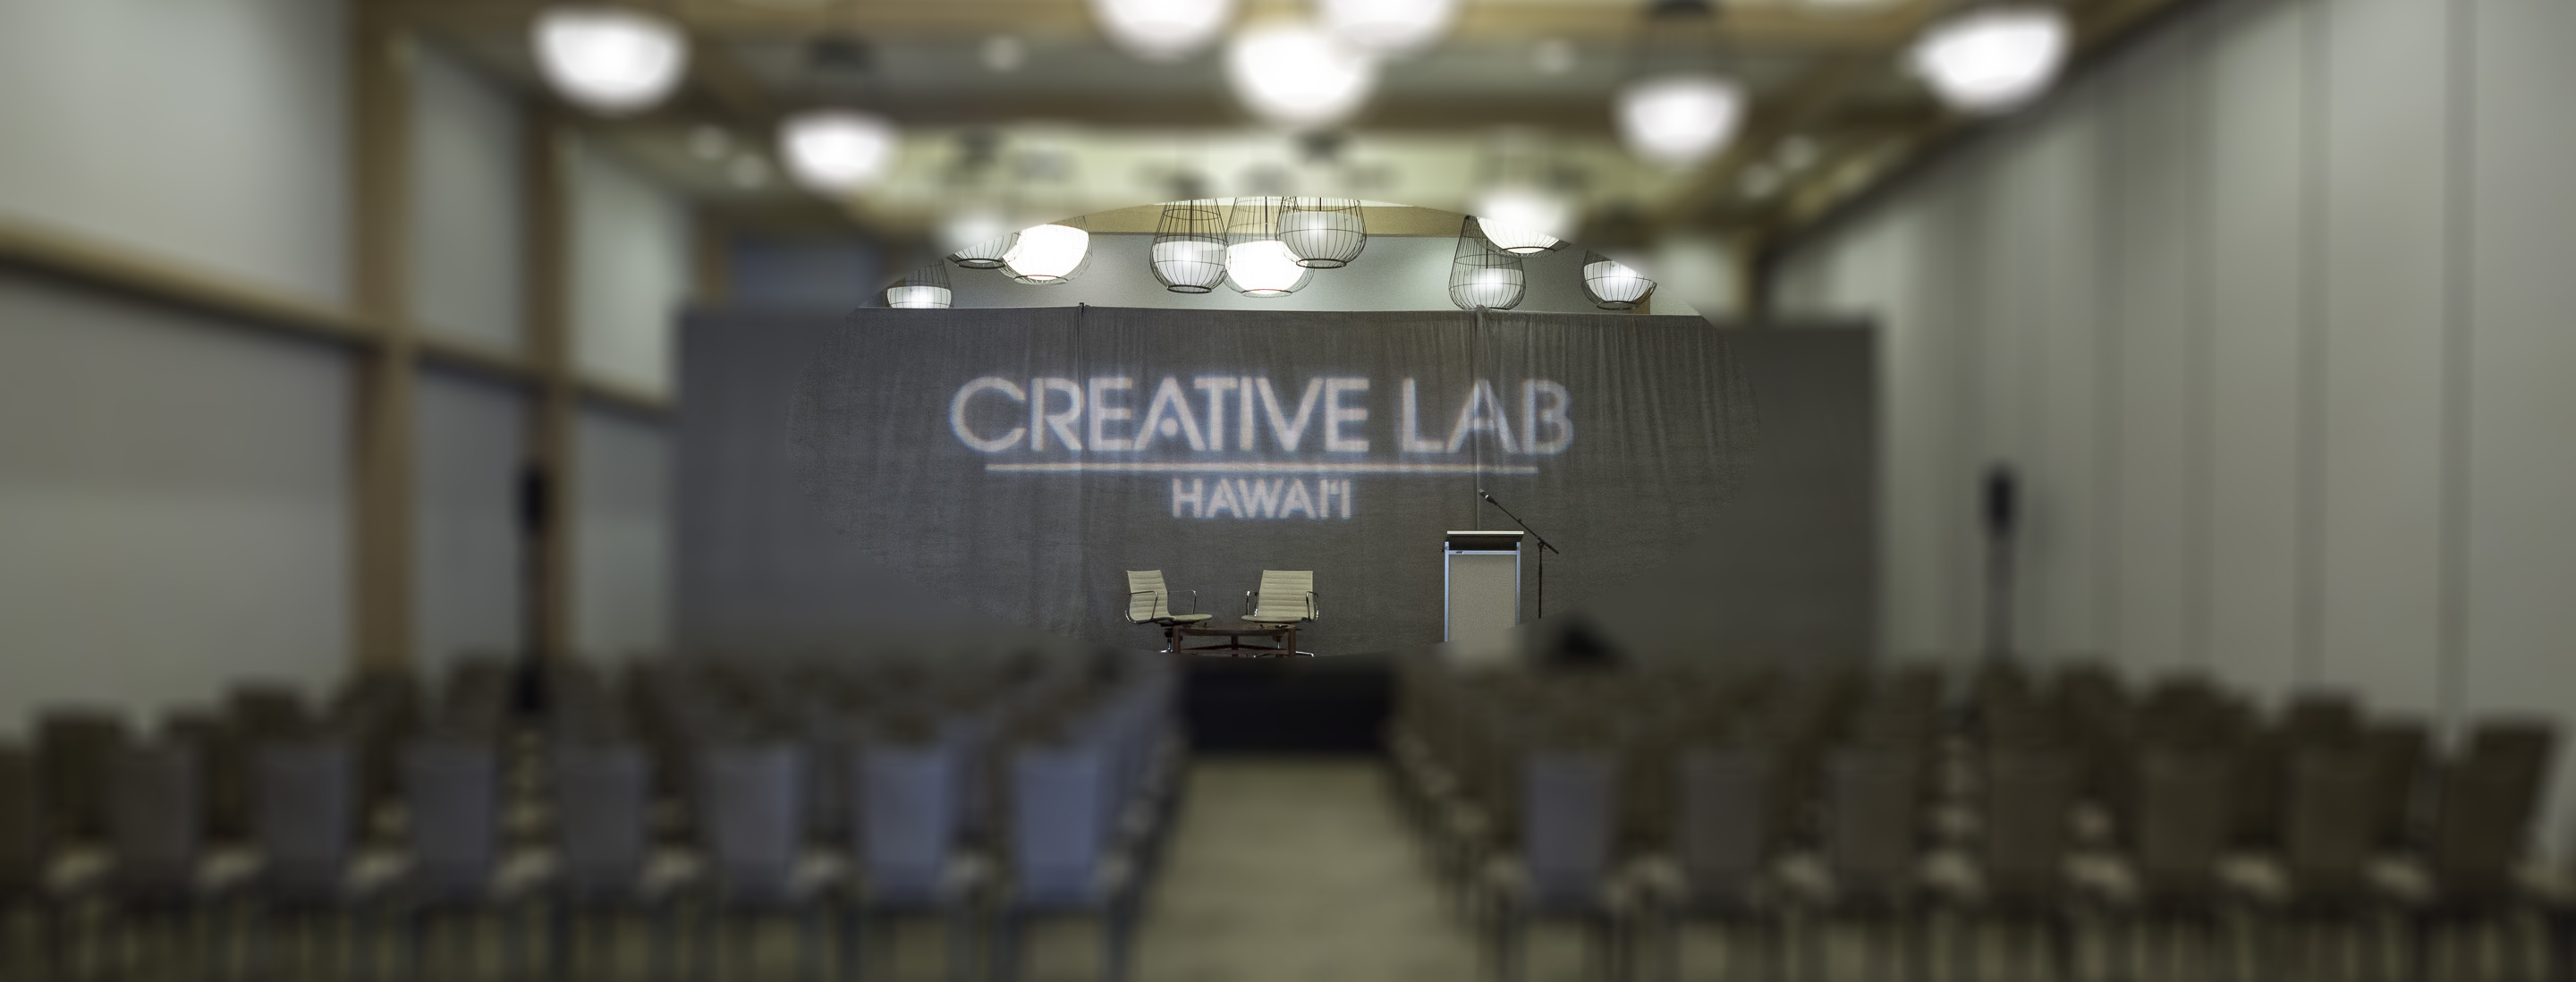 Creative Lab Hawaii